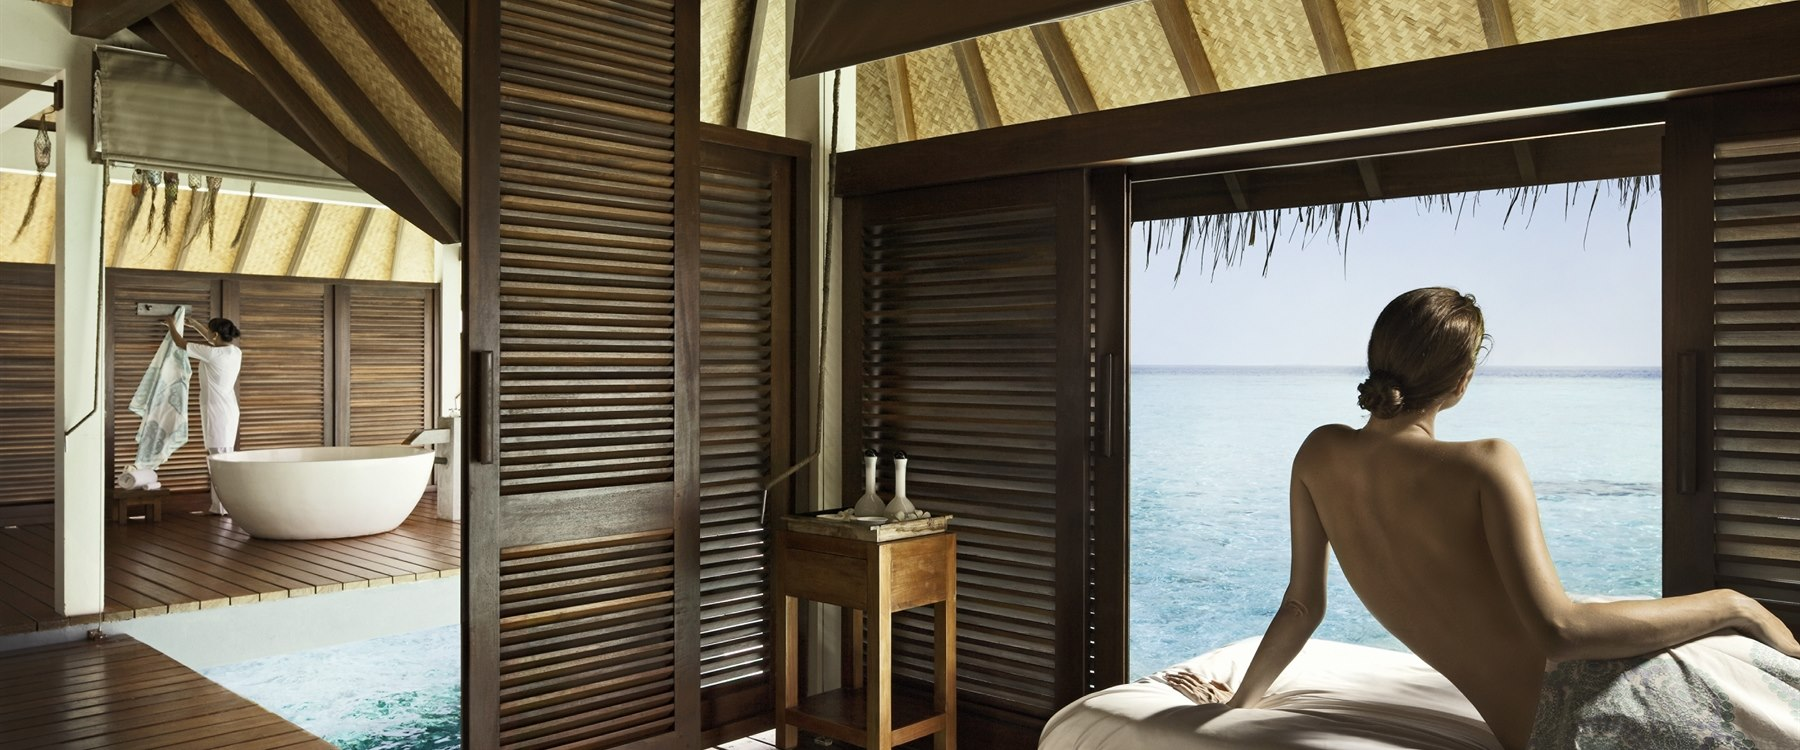 Spa Treatments at Four Seasons Resort Maldives at Landaa Giraavaru